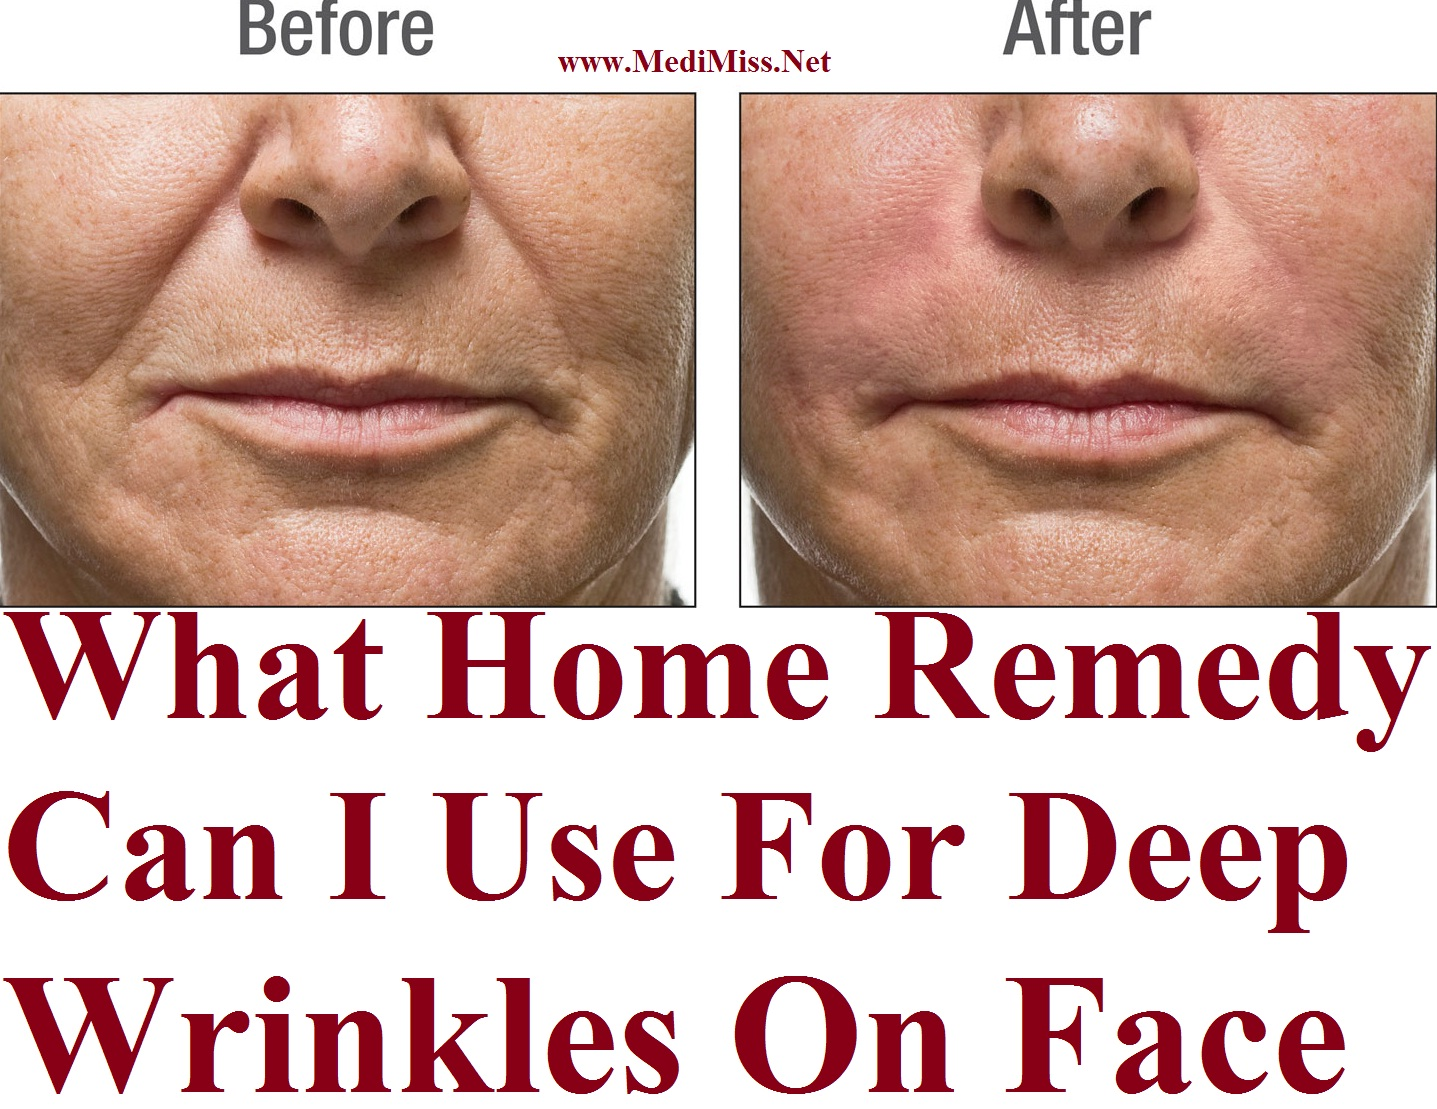 What Home Remedy Can I Use For Deep Wrinkles On Face ...